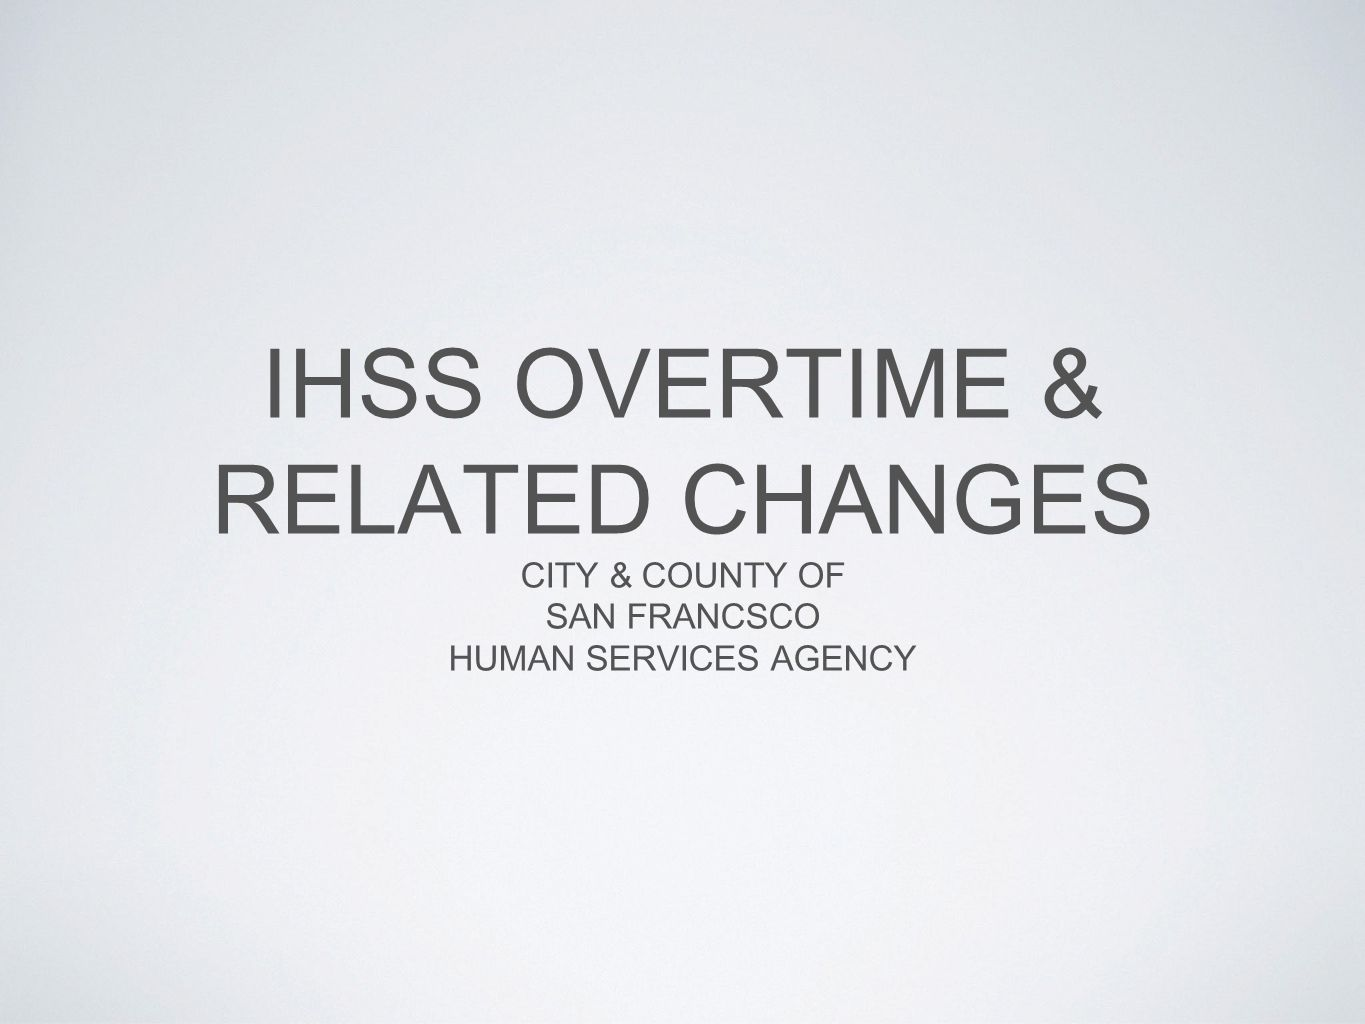 IHSS OVERTIME & RELATED CHANGES